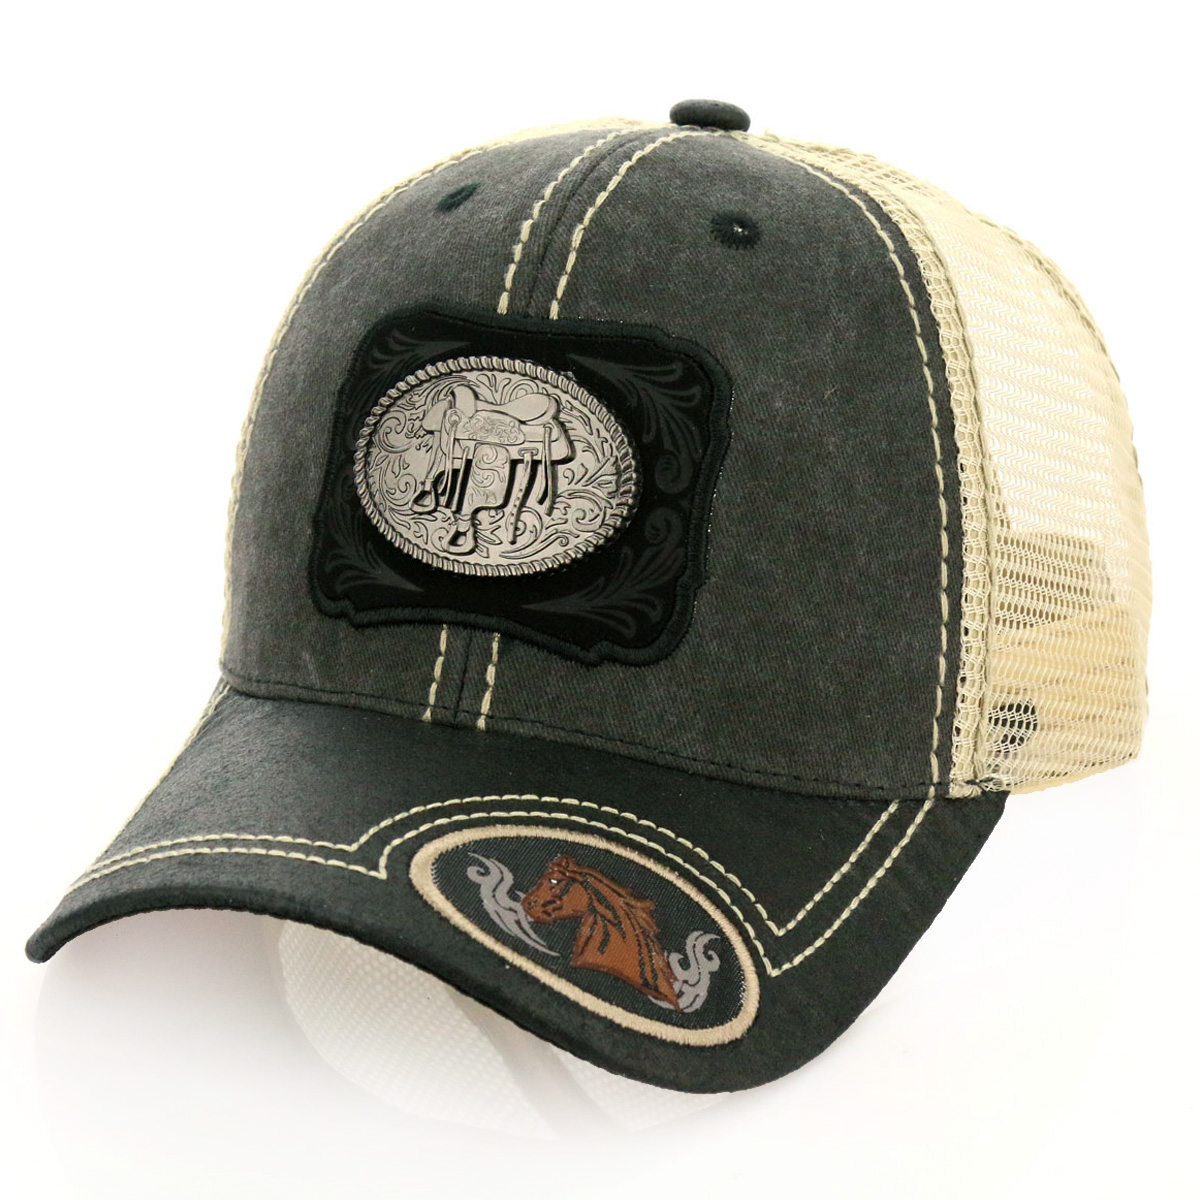 Pitbull Saddle Patch Metal Cotton Vintage Mesh Ball Cap-PB-117/GRY